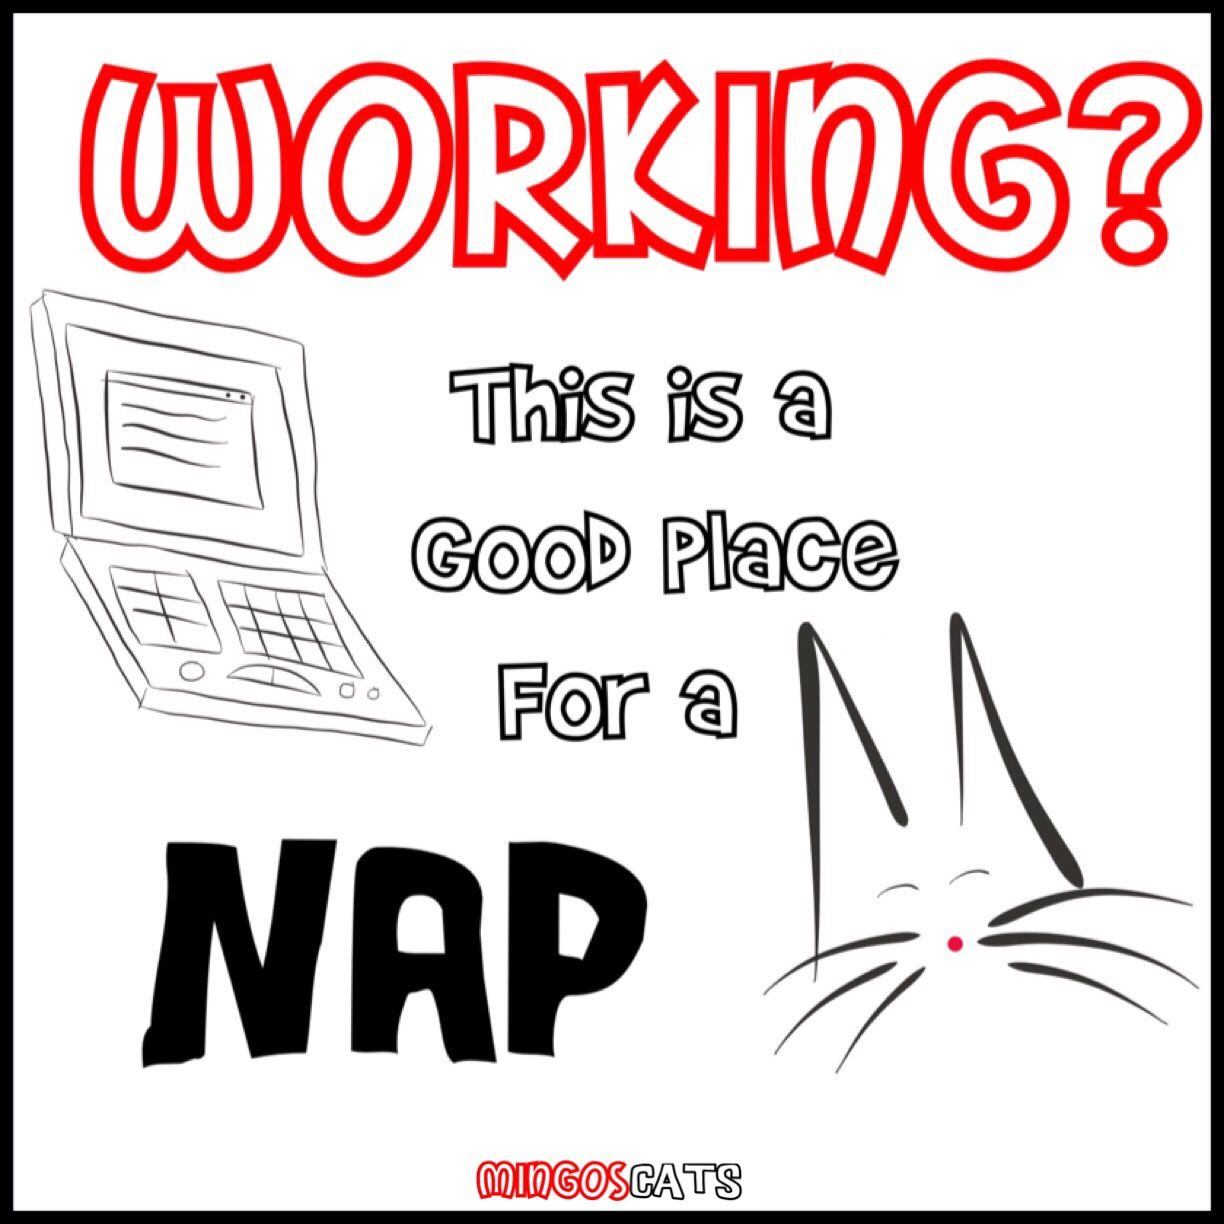 Working?   #cats #gatos #gatetes #catslovers #catlover #love #amor #meow #miau #work #trabajo